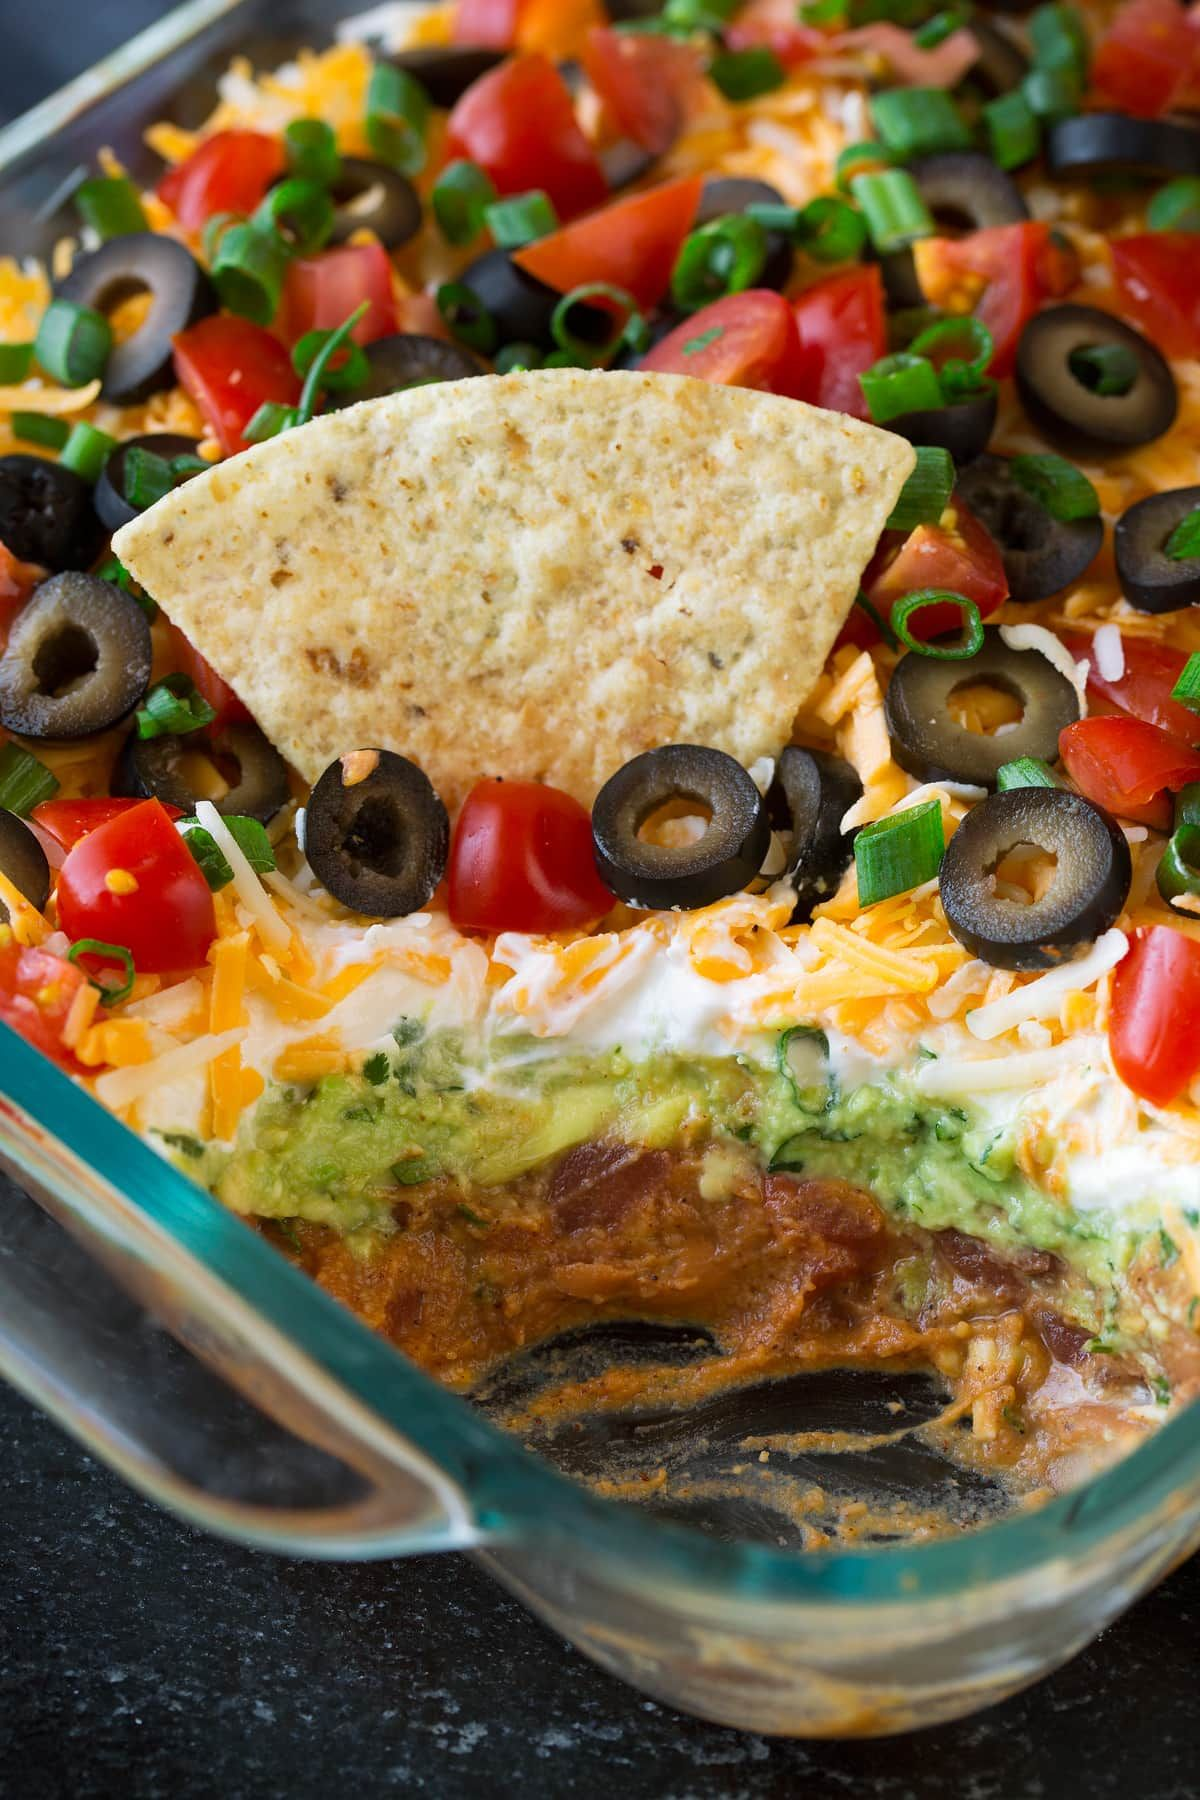 The Best 7 Layer Dip Made With Seasoned Refried Beans Guacamole Sour Cream Cheese Olives Tomatoes A Cookout Food Mexican Food Recipes Layered Dip Recipes